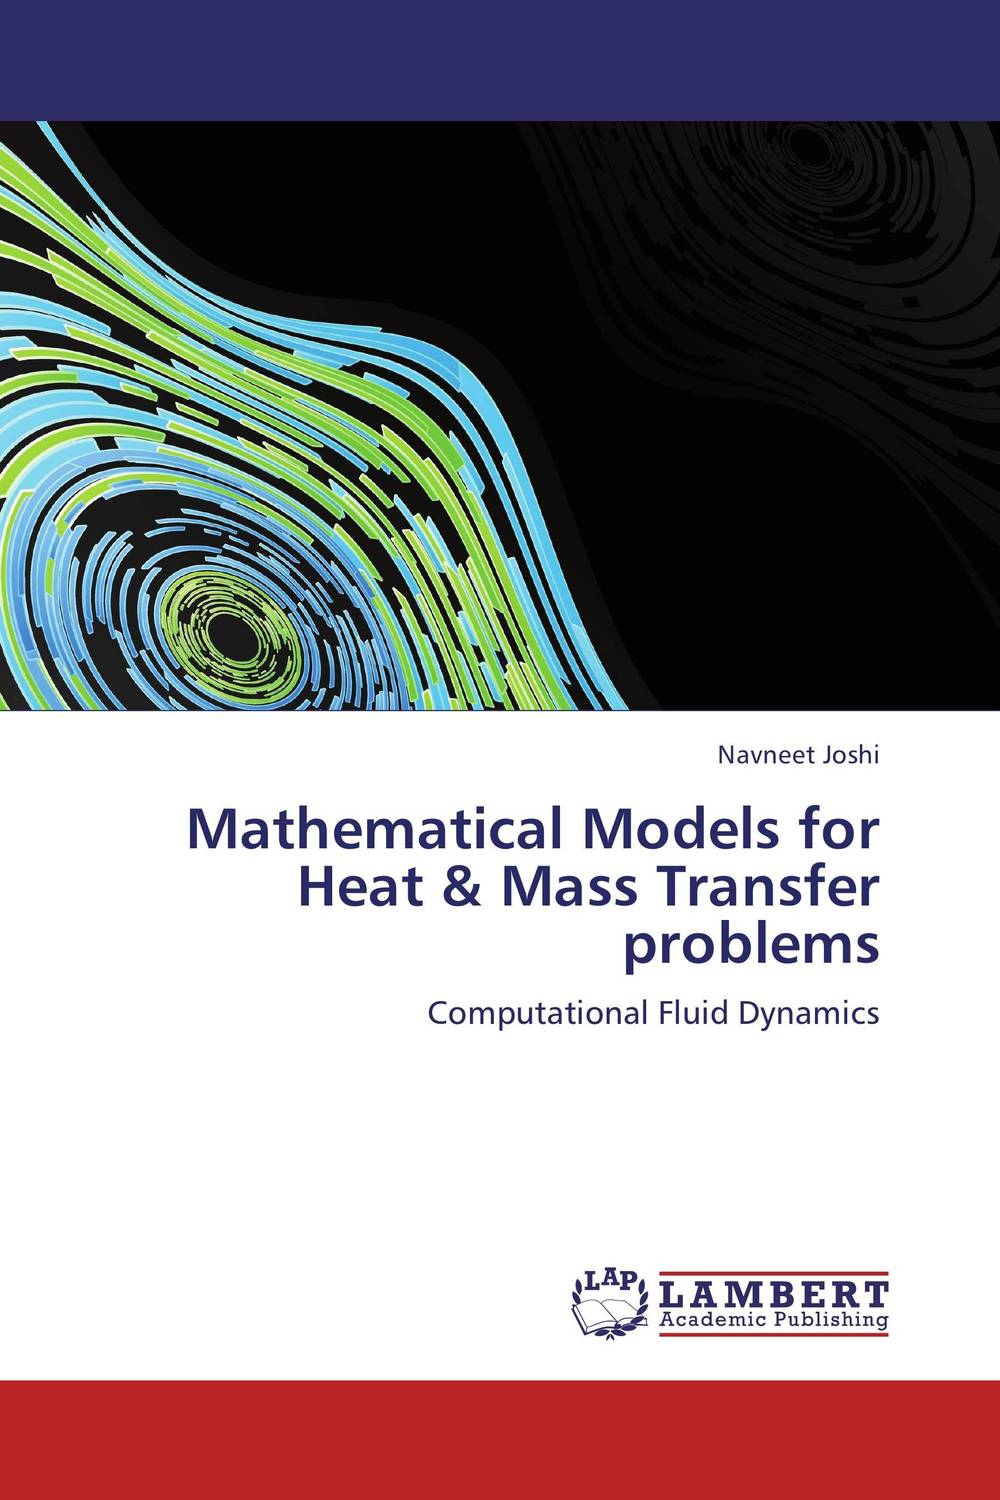 Mathematical Models for Heat & Mass Transfer problems analytical and numerical approximation solution of bio heat equation